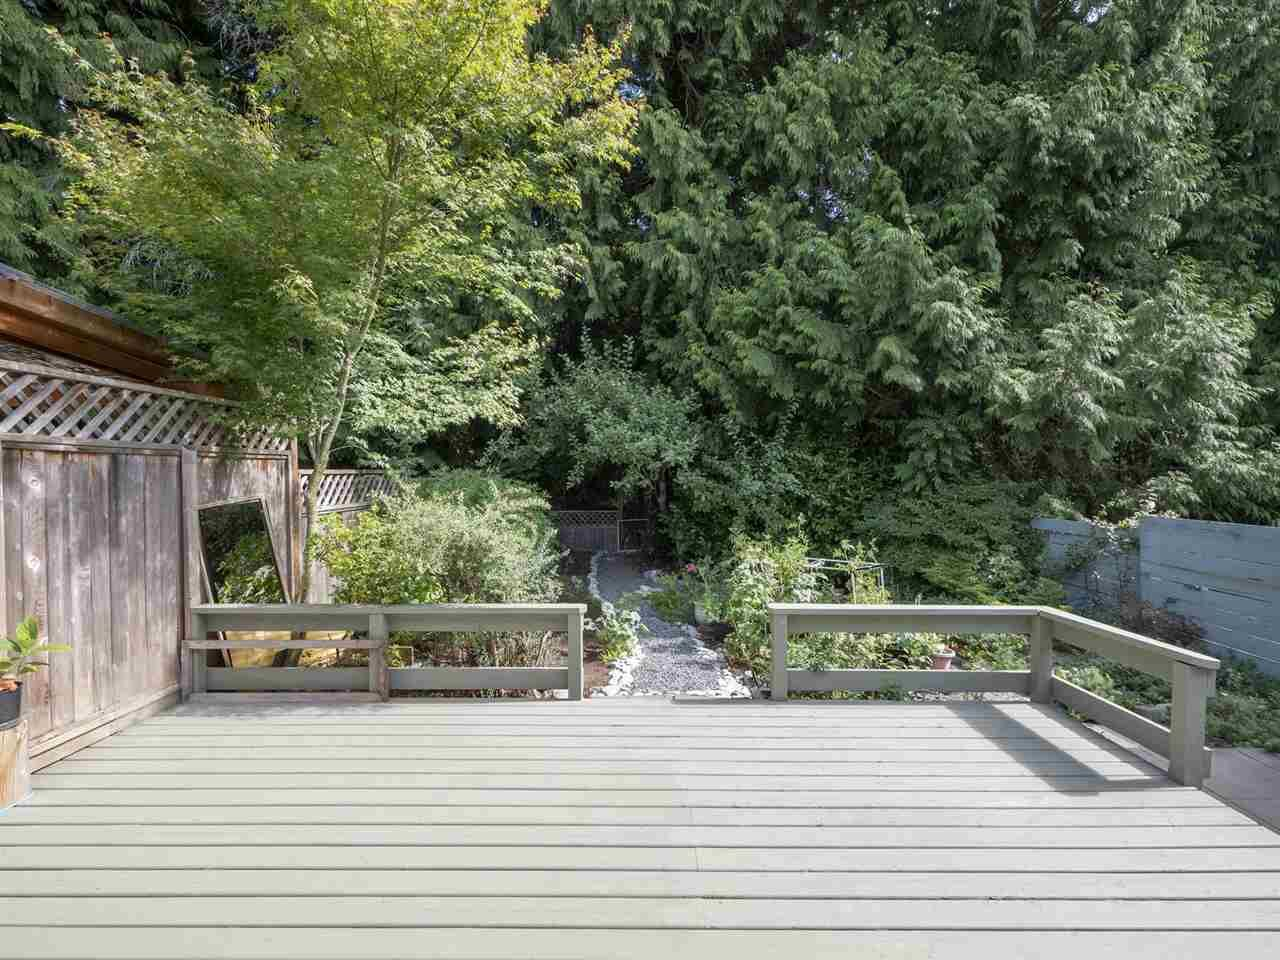 Main Photo: B - 778 CREEKSIDE Crescent in Gibsons: Gibsons & Area 1/2 Duplex for sale (Sunshine Coast)  : MLS®# R2422485